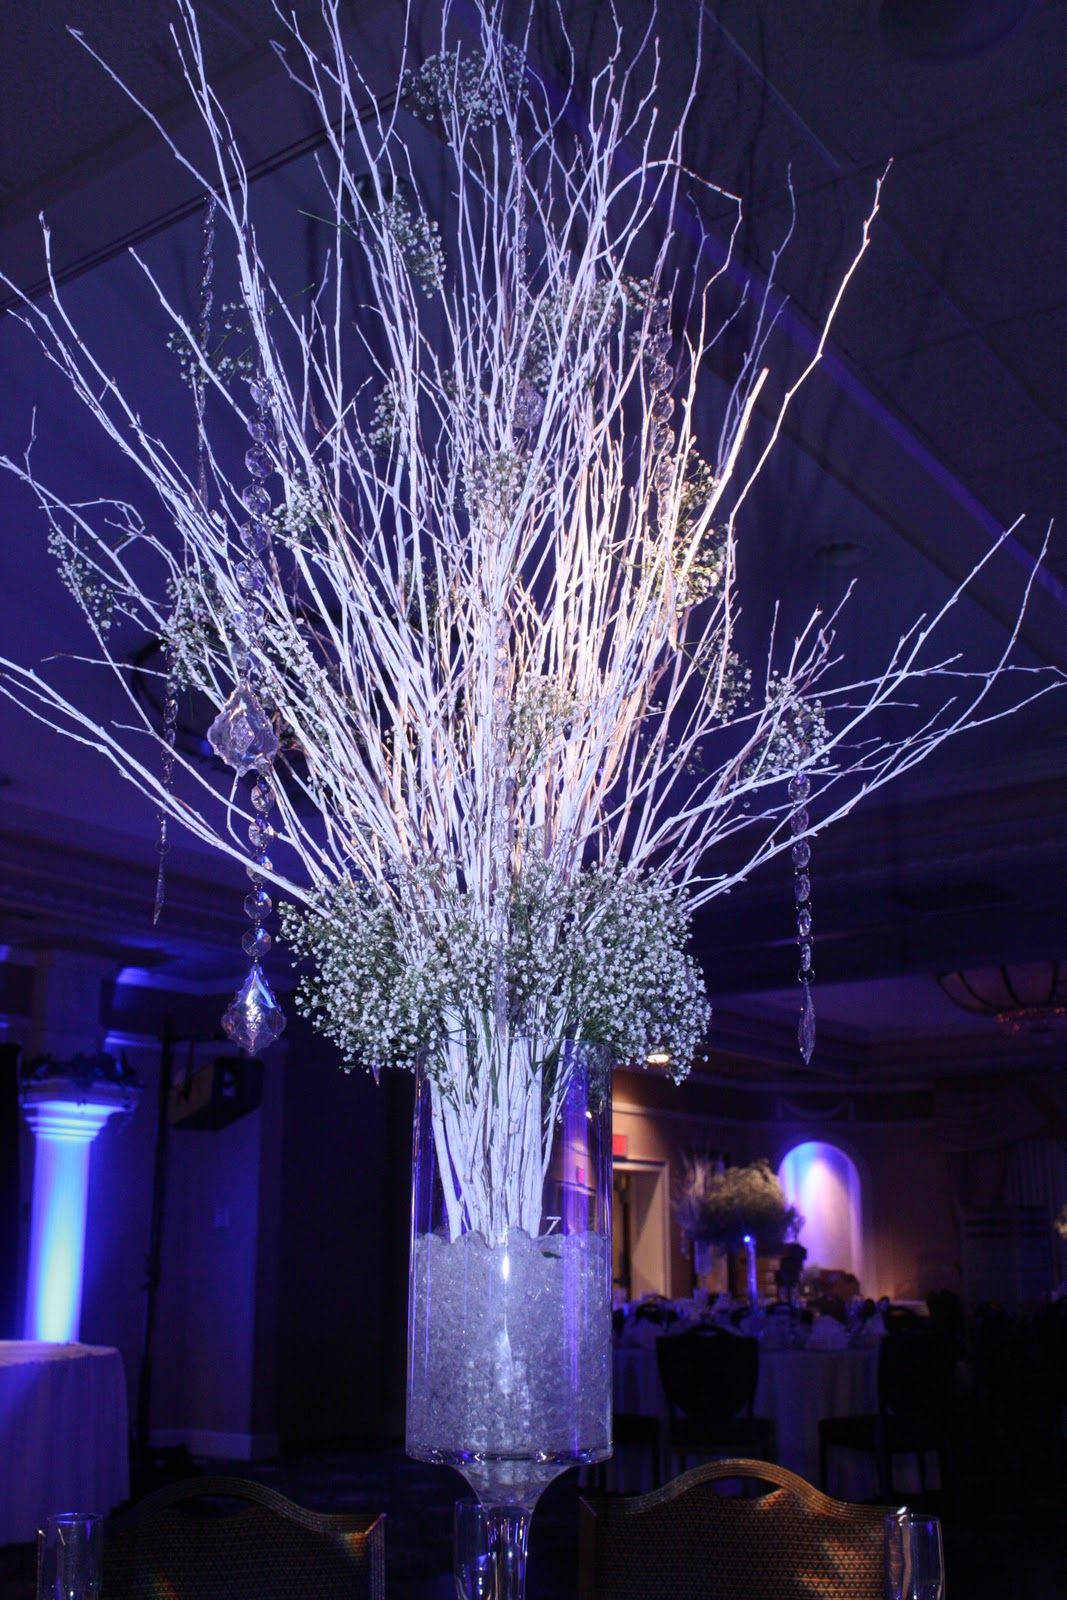 Pin By Stacie Hinkle Norris On Wedding In 2019 Winter Wedding Centerpieces Christmas Wedding Wedding Decorations